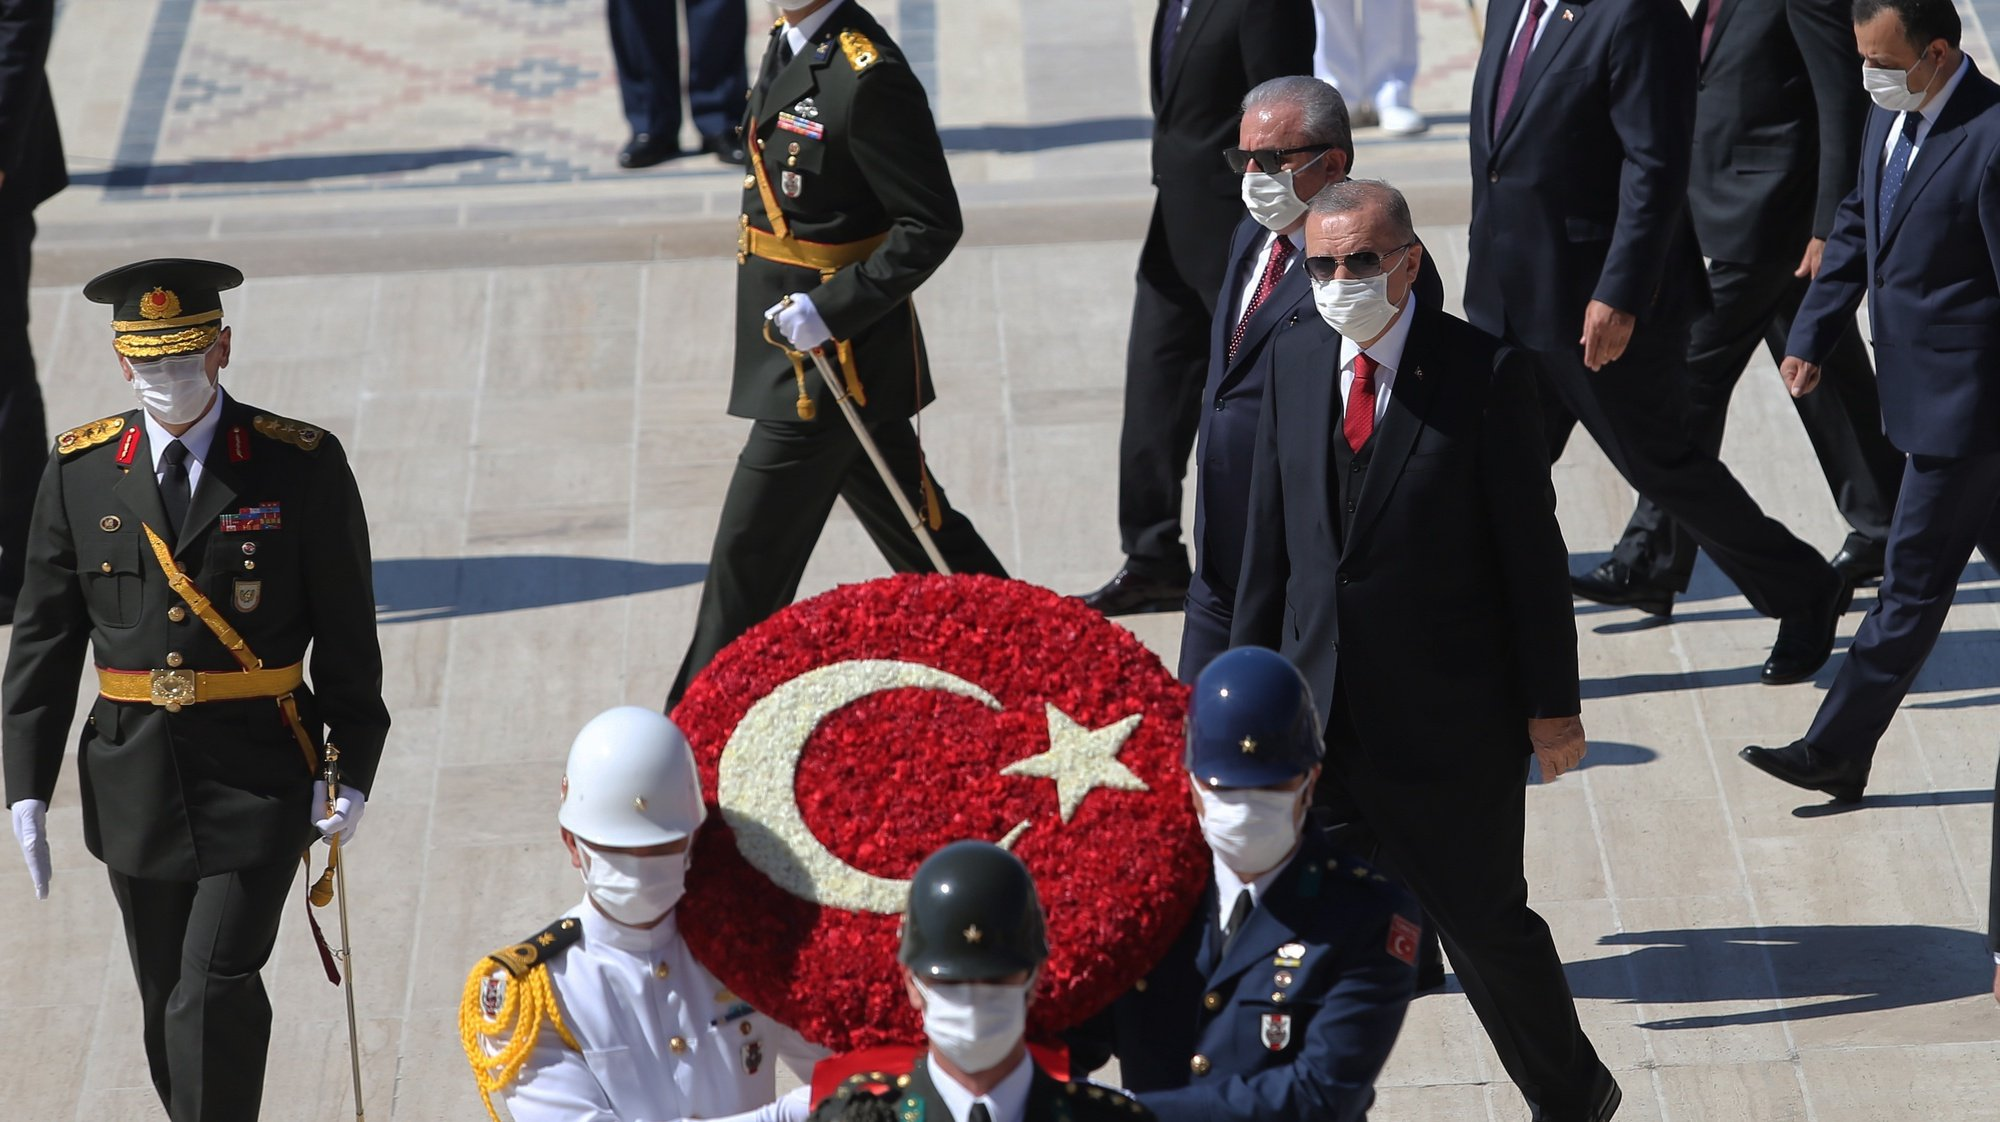 epa08635648 Turkish President Recep Tayyip Erdogan (C) and Turkish Grand National Assembly (TBMM) Speaker Mustafa Sentop (C-L) attend wreath laying ceremony at the Mausoleum of Mustafa Kemal Ataturk, founder of the modern Turkey, during a parade to mark Victory Day in Ankara, Turkey, 30 August 2020. Turkey celebrates its Victory Day in commemoration of the Battle of Dumlupinar, a key victory over Greece on 30 August 1922 in Turkey's War of Independence.  EPA/STR